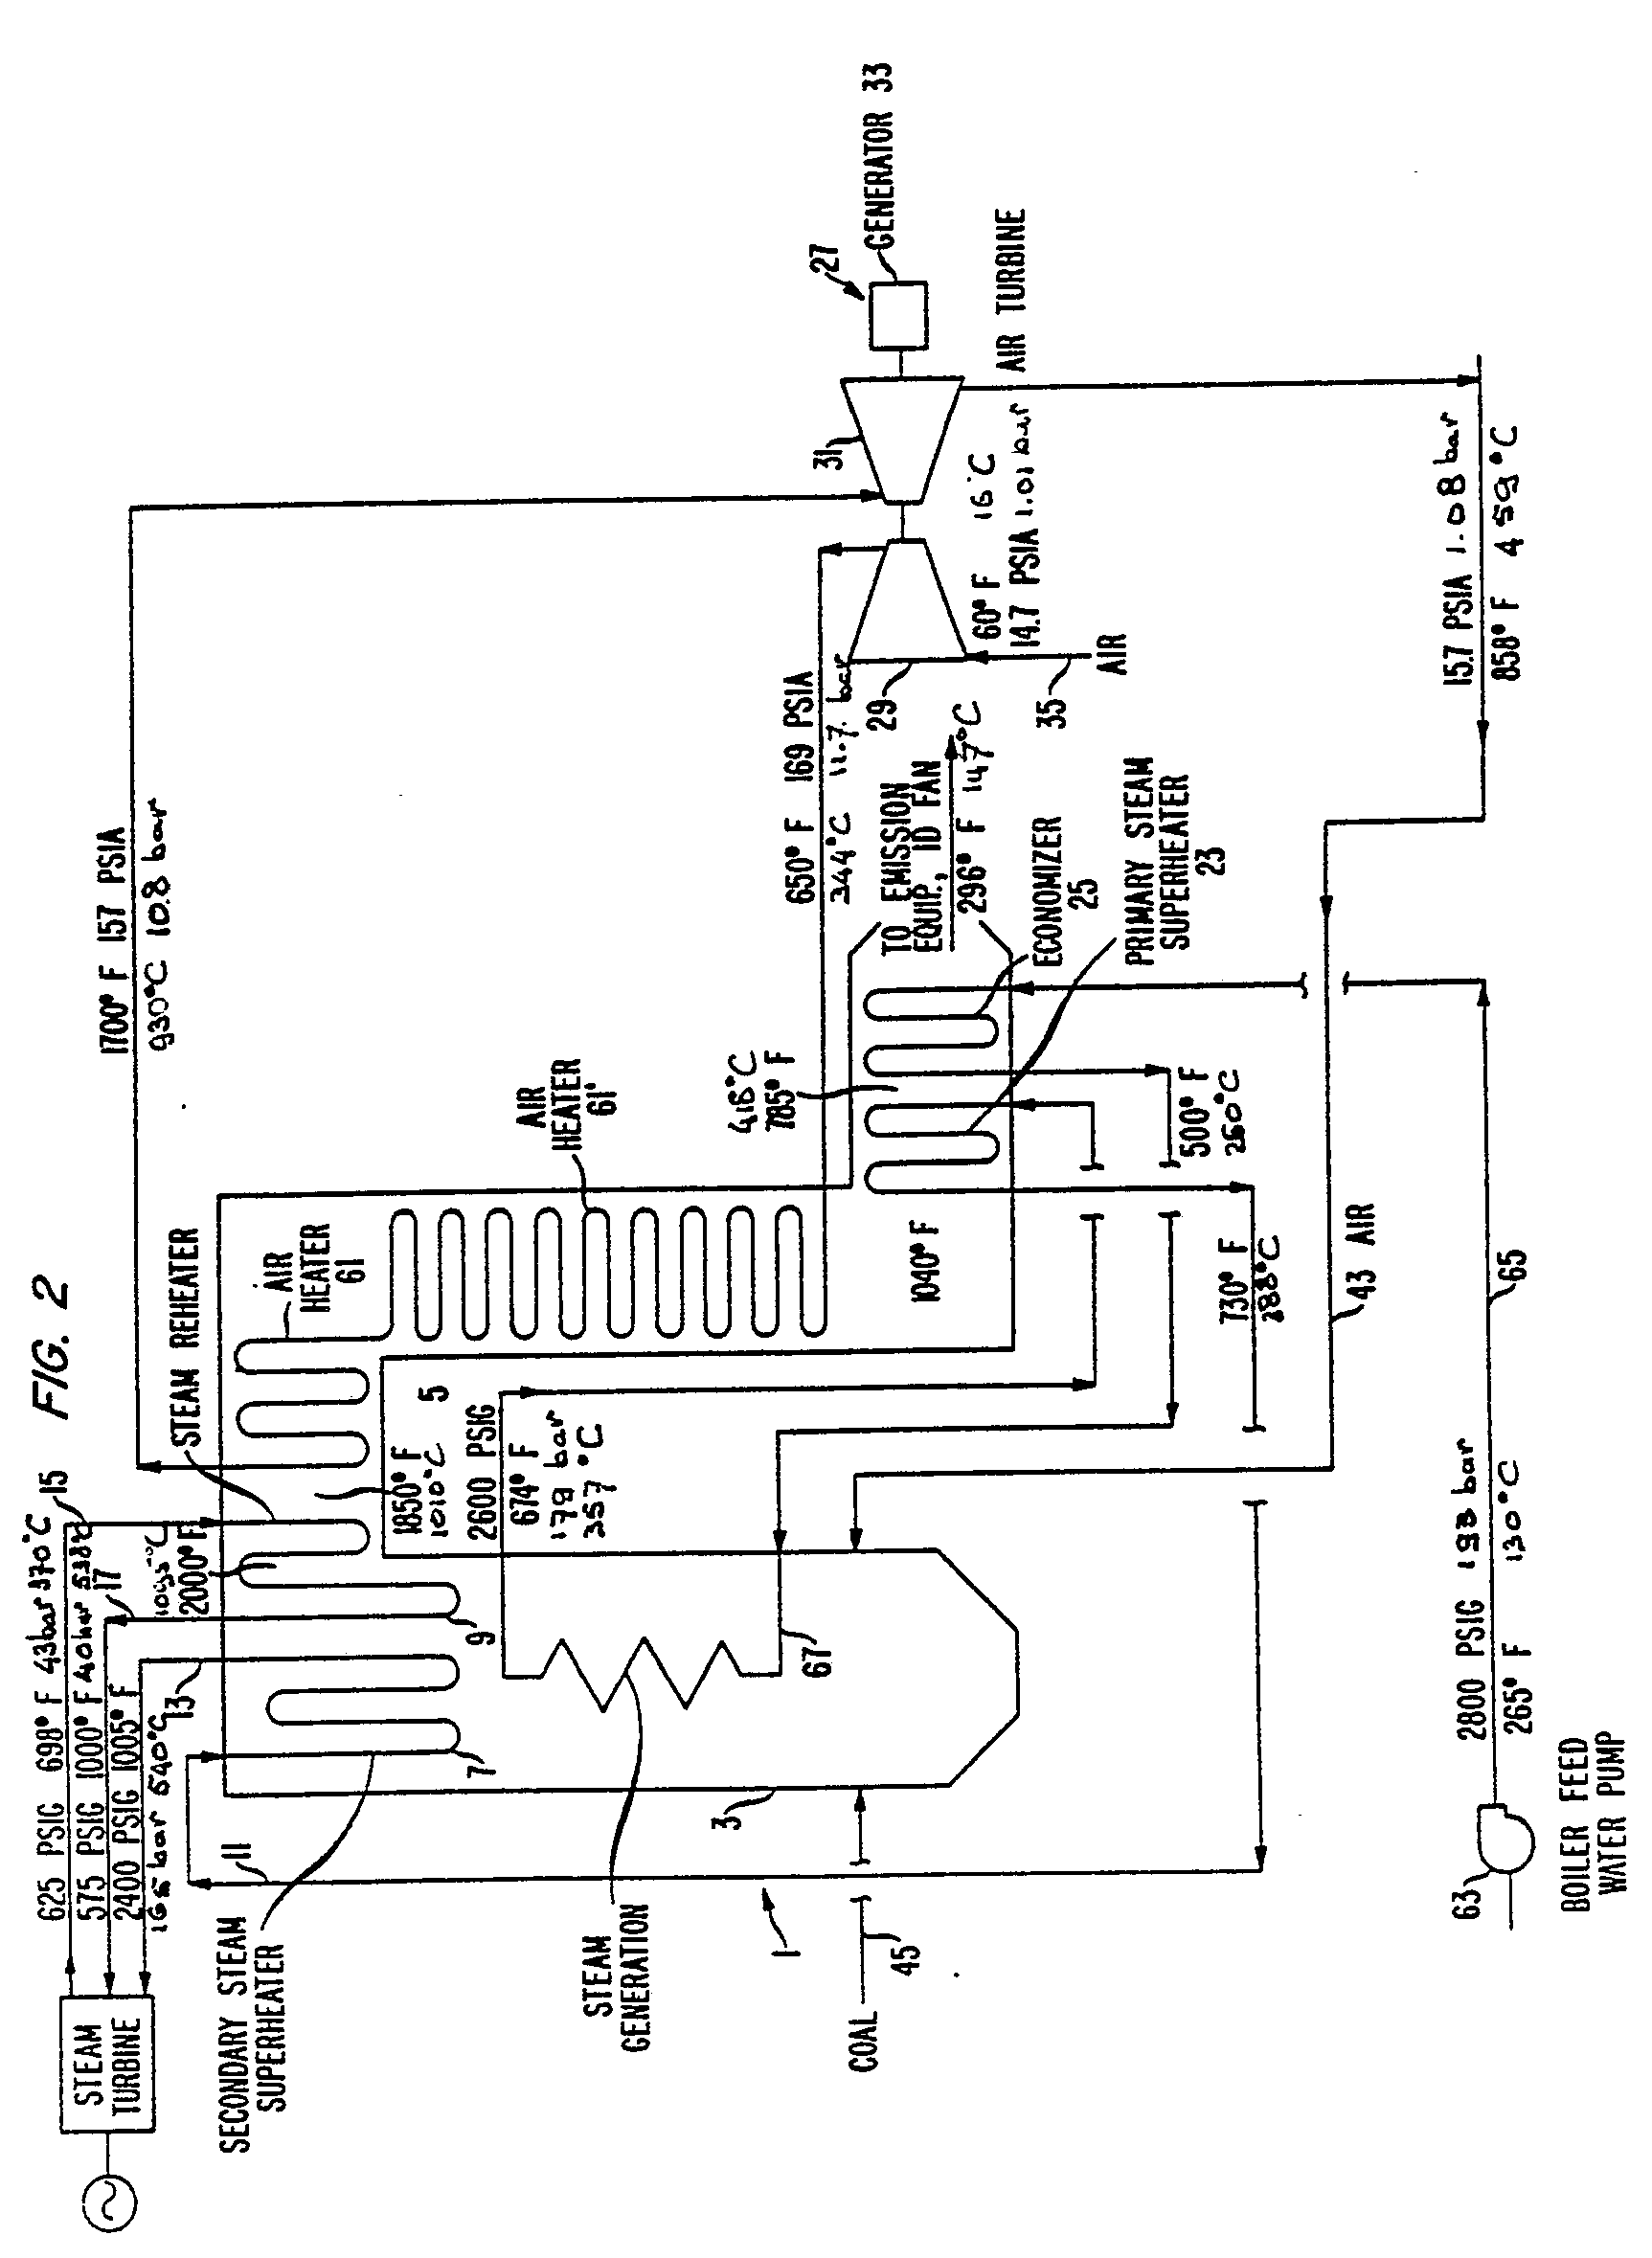 1990 oldsmobile 88 royale diagram wiring schematic